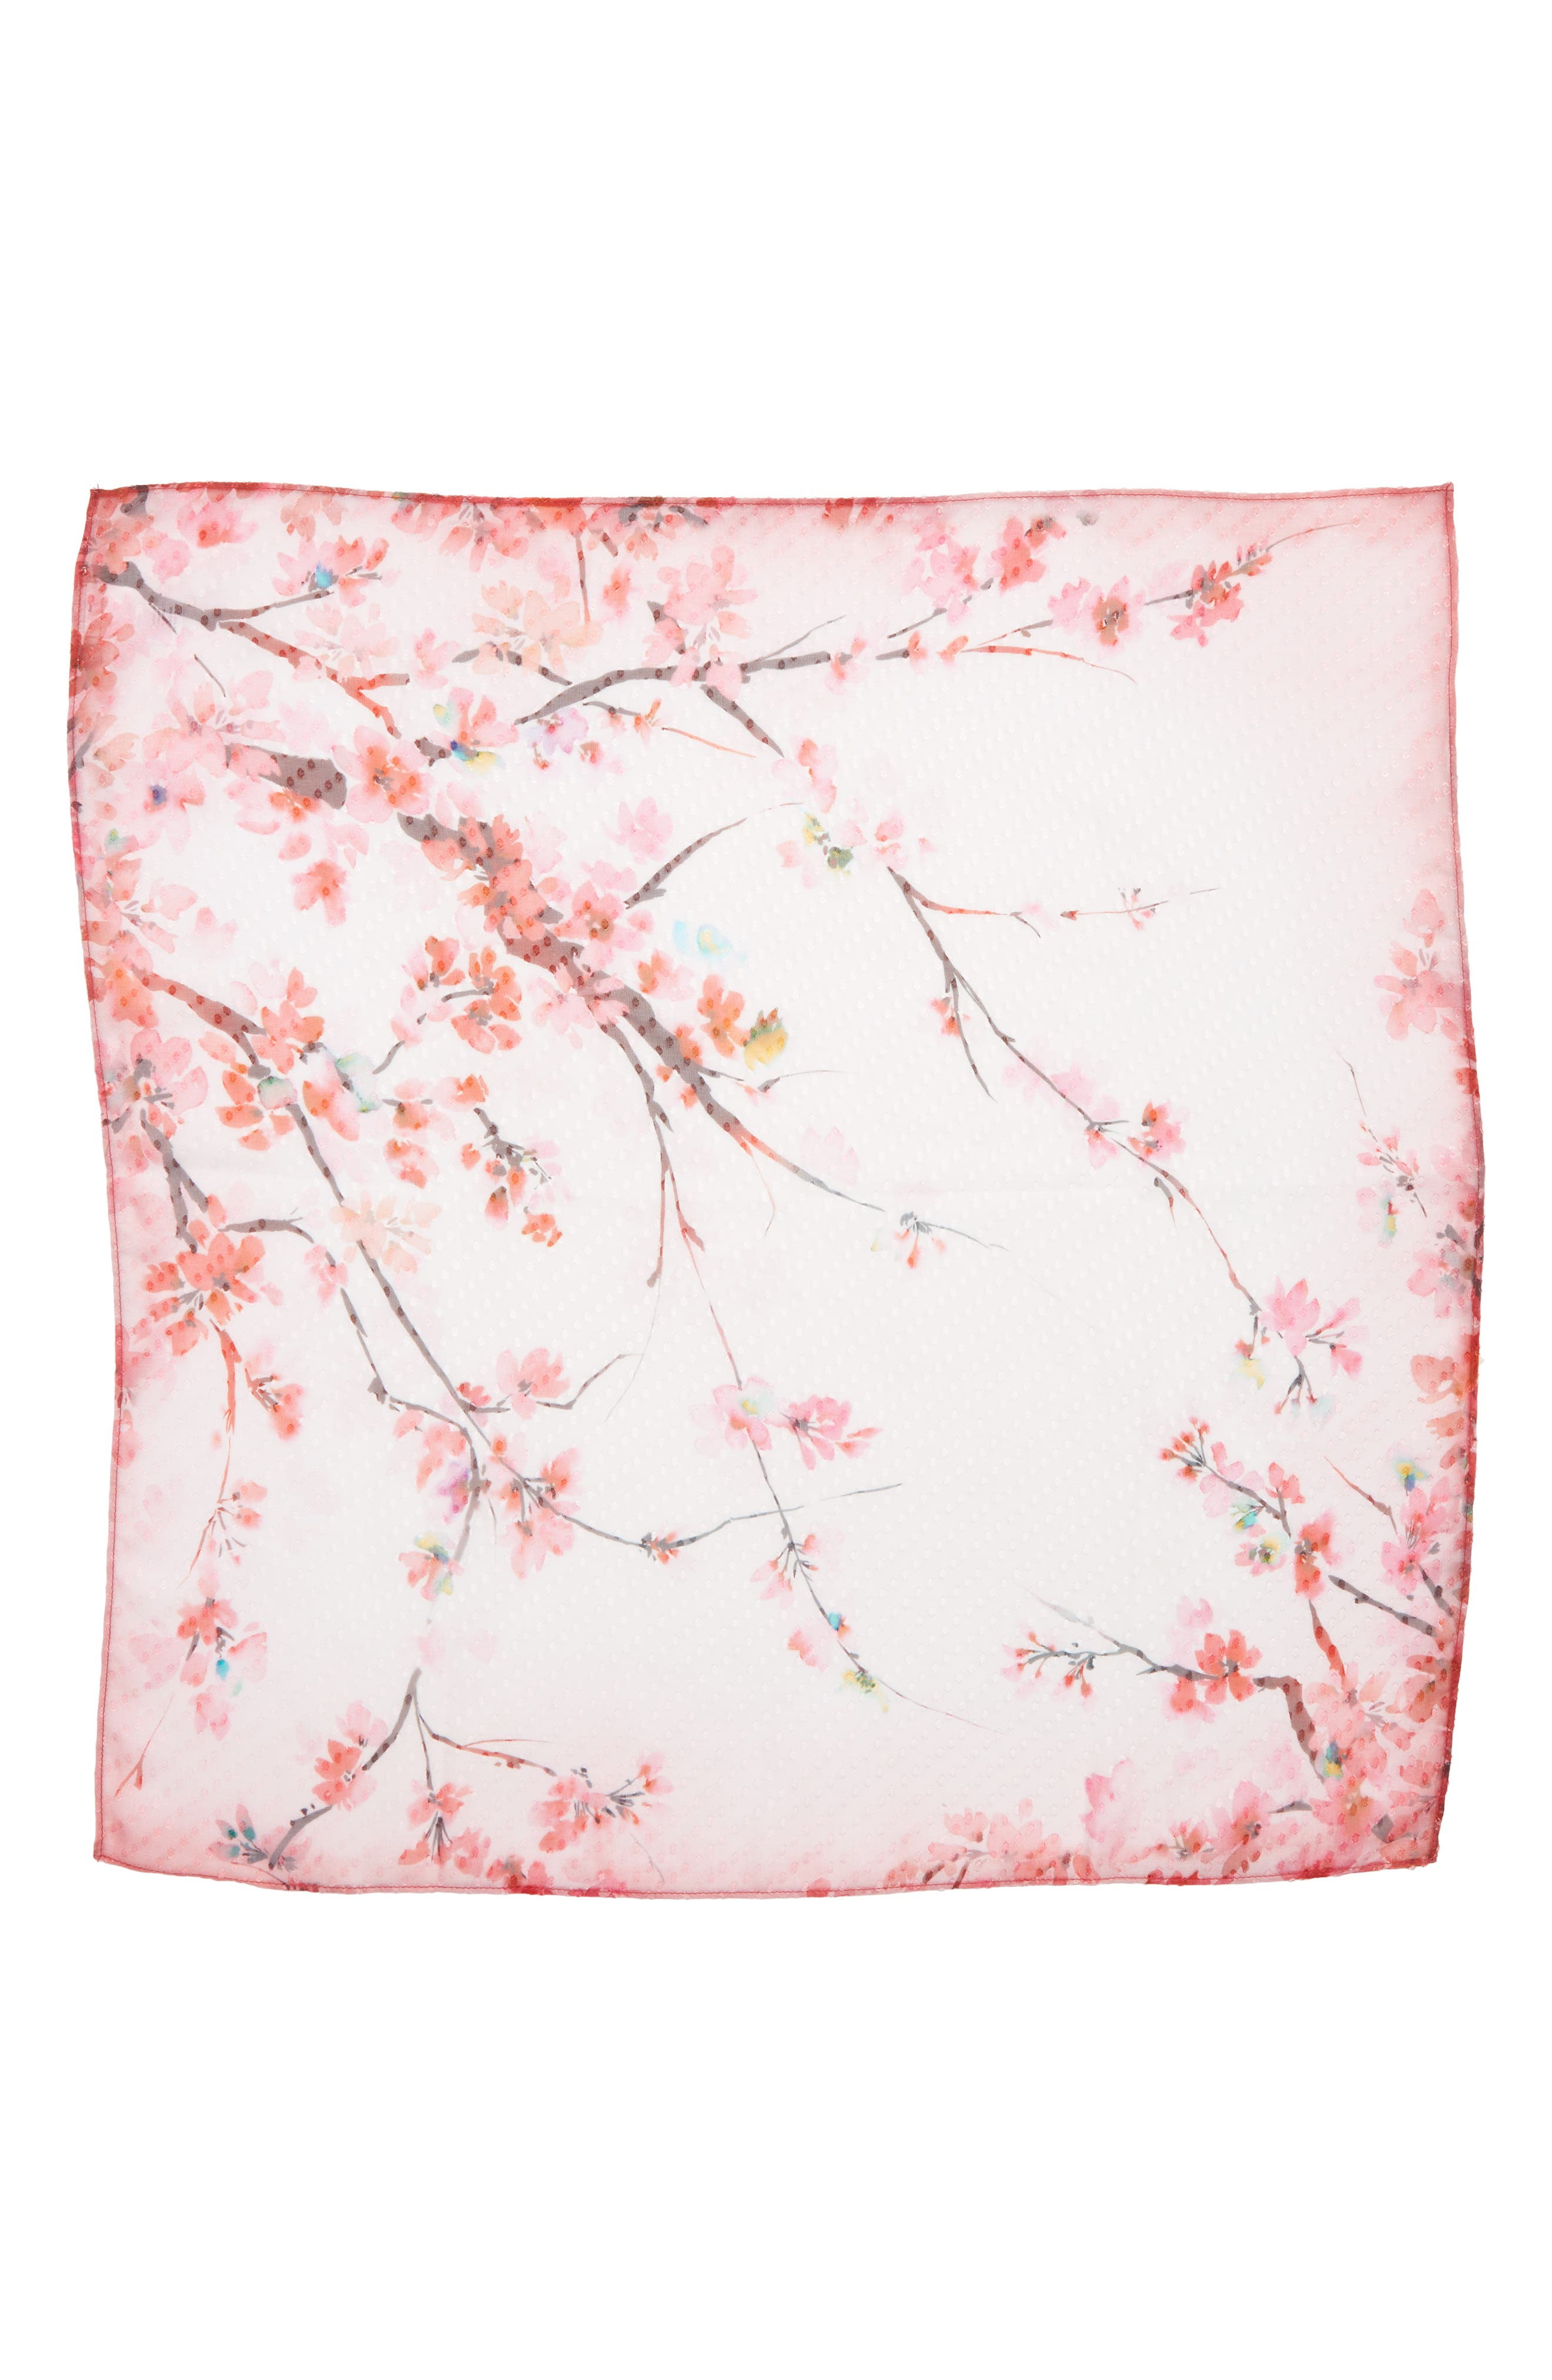 Jacquard Dot Silk Blend Scarf,                             Alternate thumbnail 3, color,                             Pink Enlightened Branches